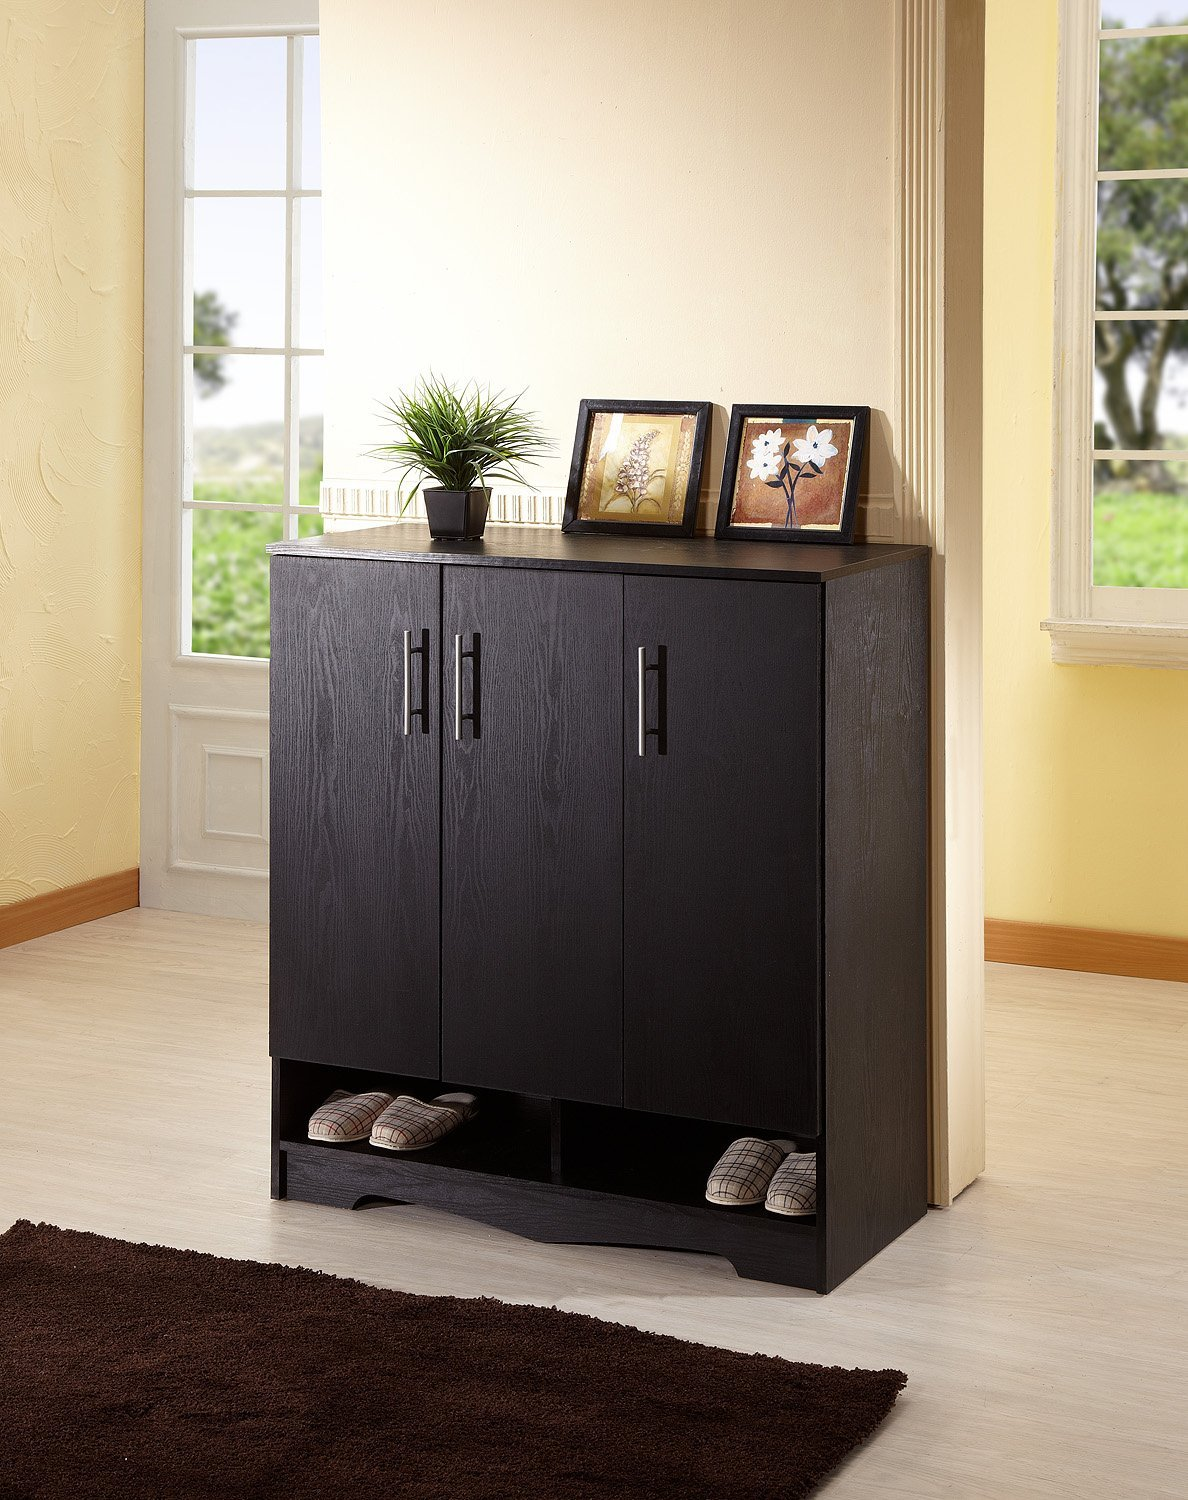 Amazon.com: IoHOMES Westwood 7 Shelf Shoe Cabinet, Black: Kitchen U0026 Dining